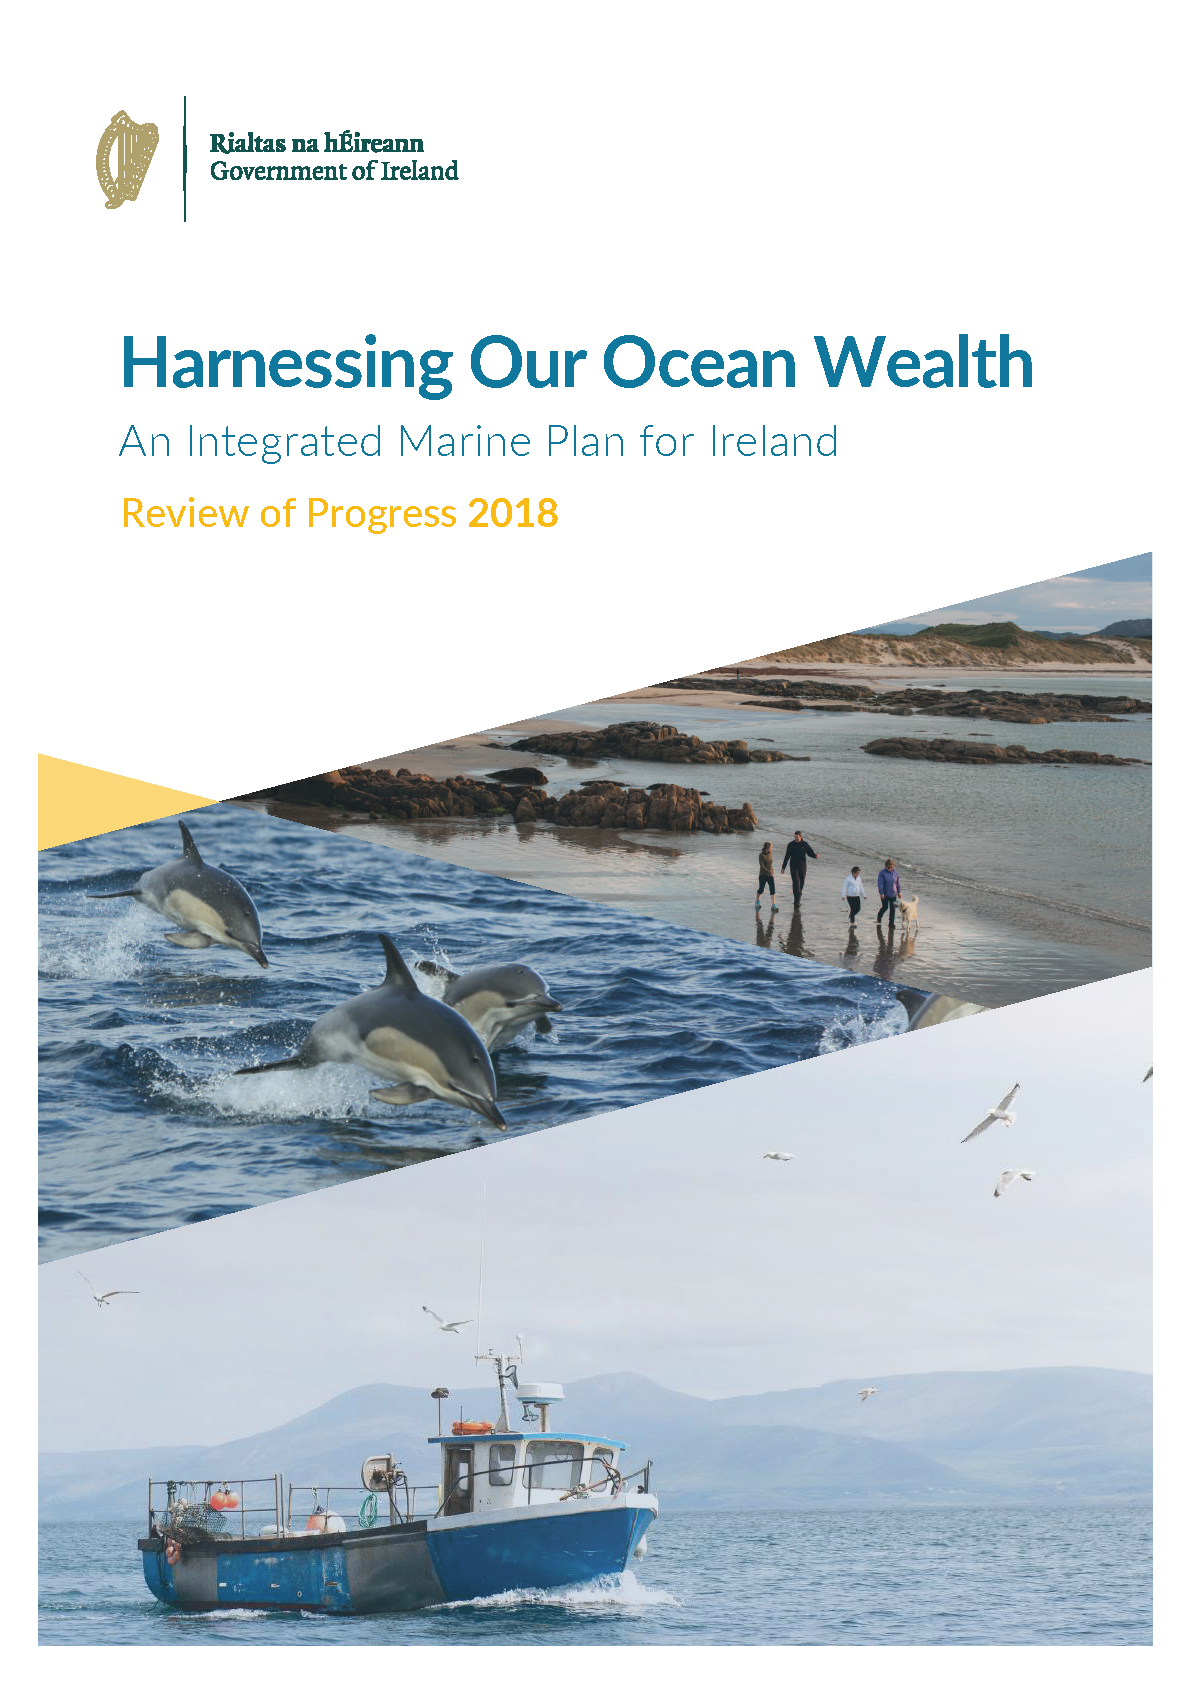 Harnessing Our Ocean Wealth - Review of Progress 2018